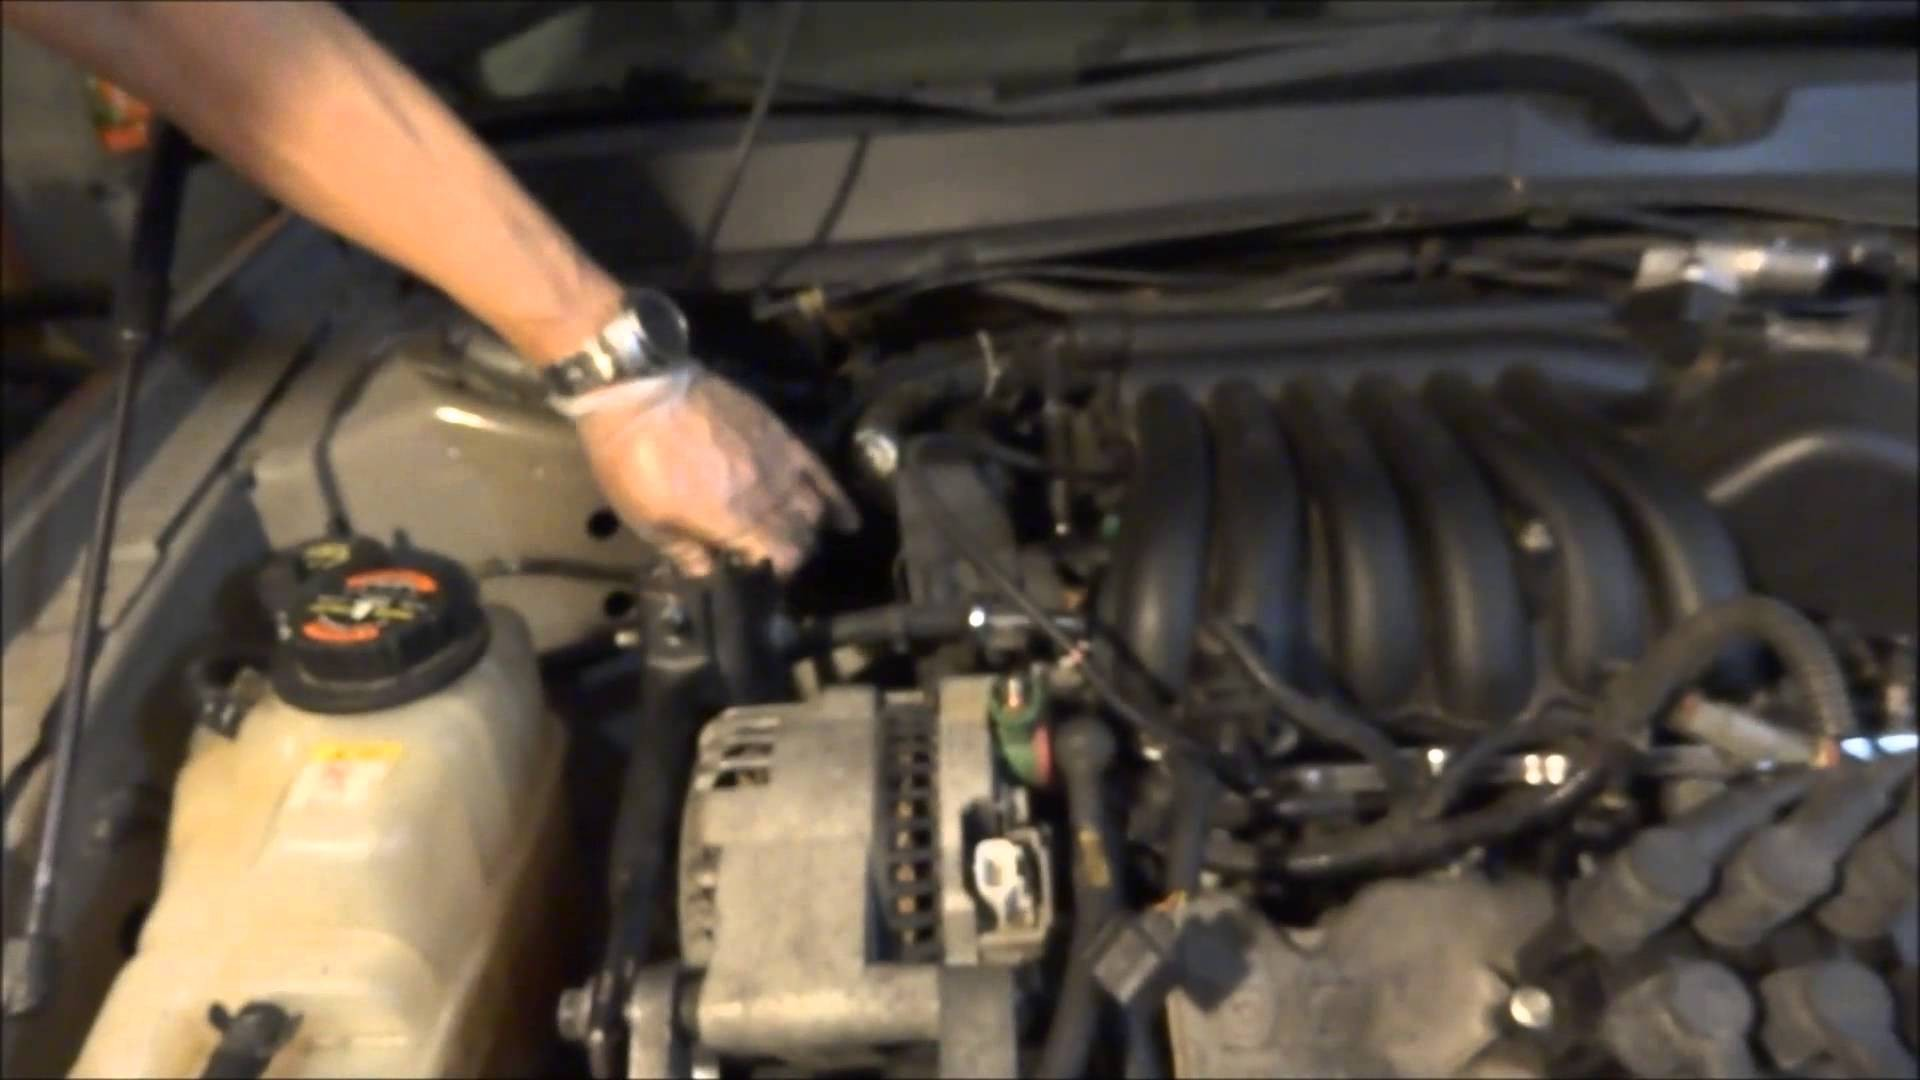 2000 Mercury Sable Engine Diagram Removing Alternator From 2000 2007 ford Taurus Of 2000 Mercury Sable Engine Diagram How to Install Replace Alternator ford Taurus V63 0l 00 07 1aauto